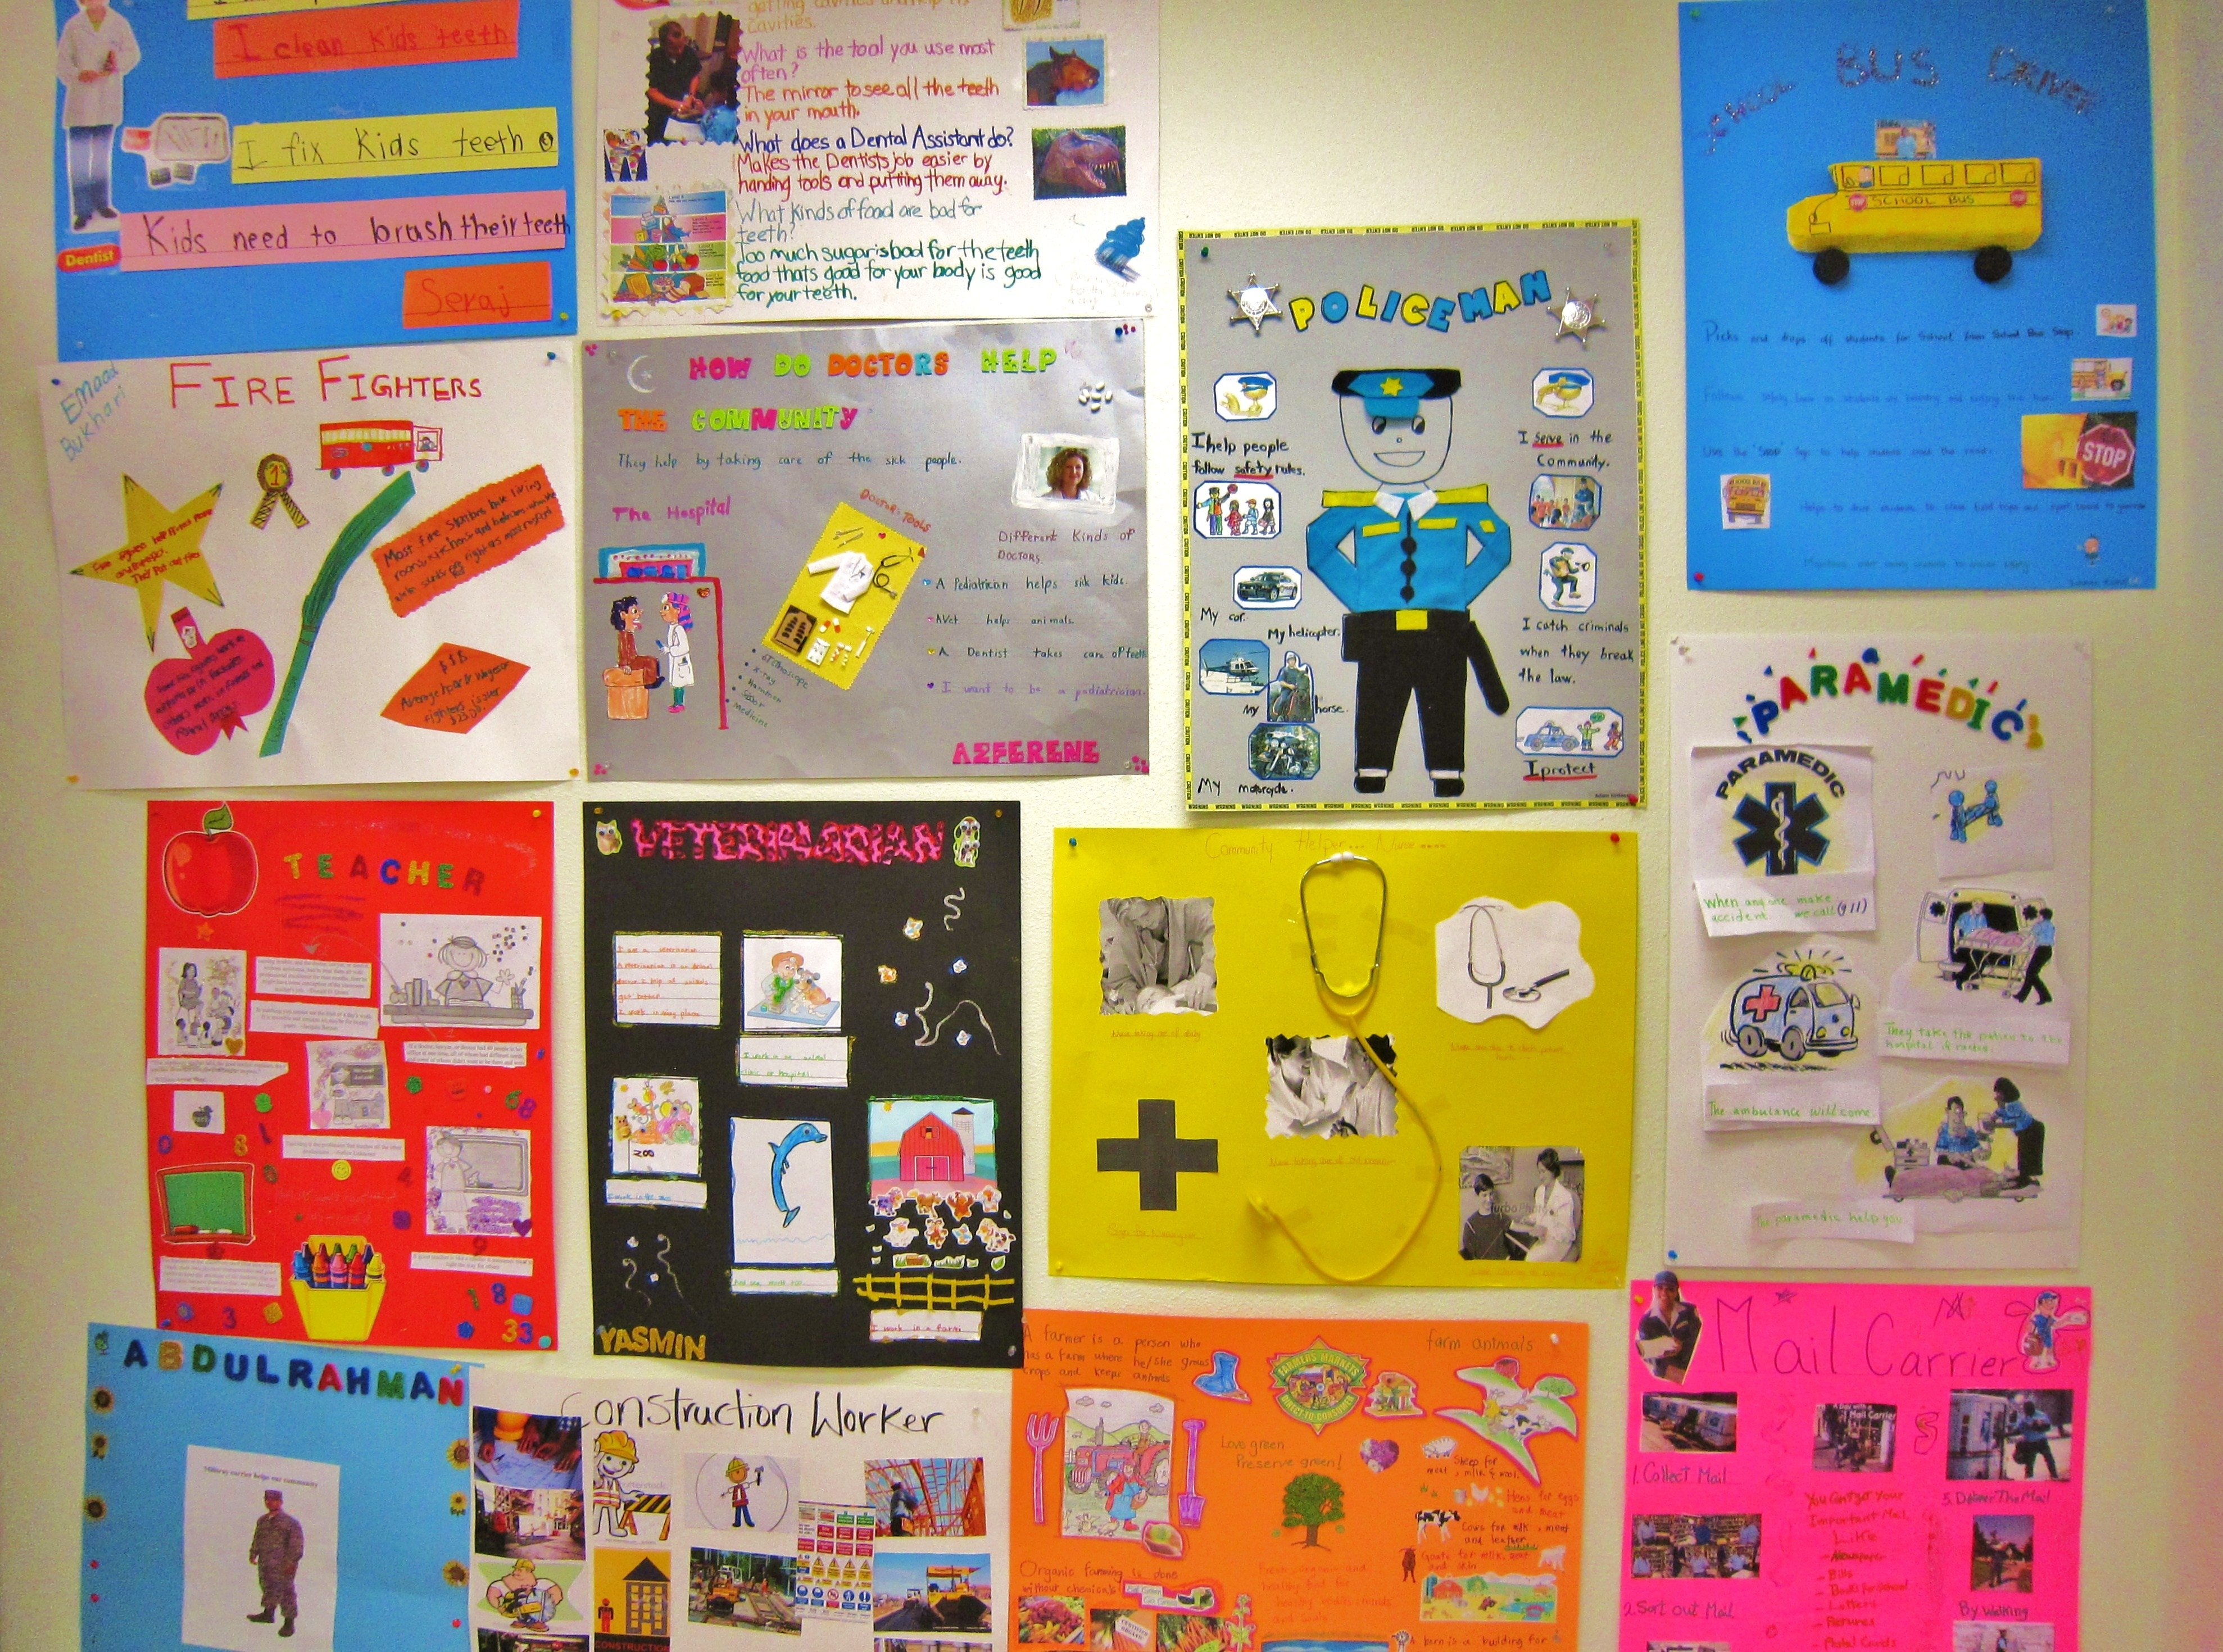 creative poster projects school posters related keywords - tierra